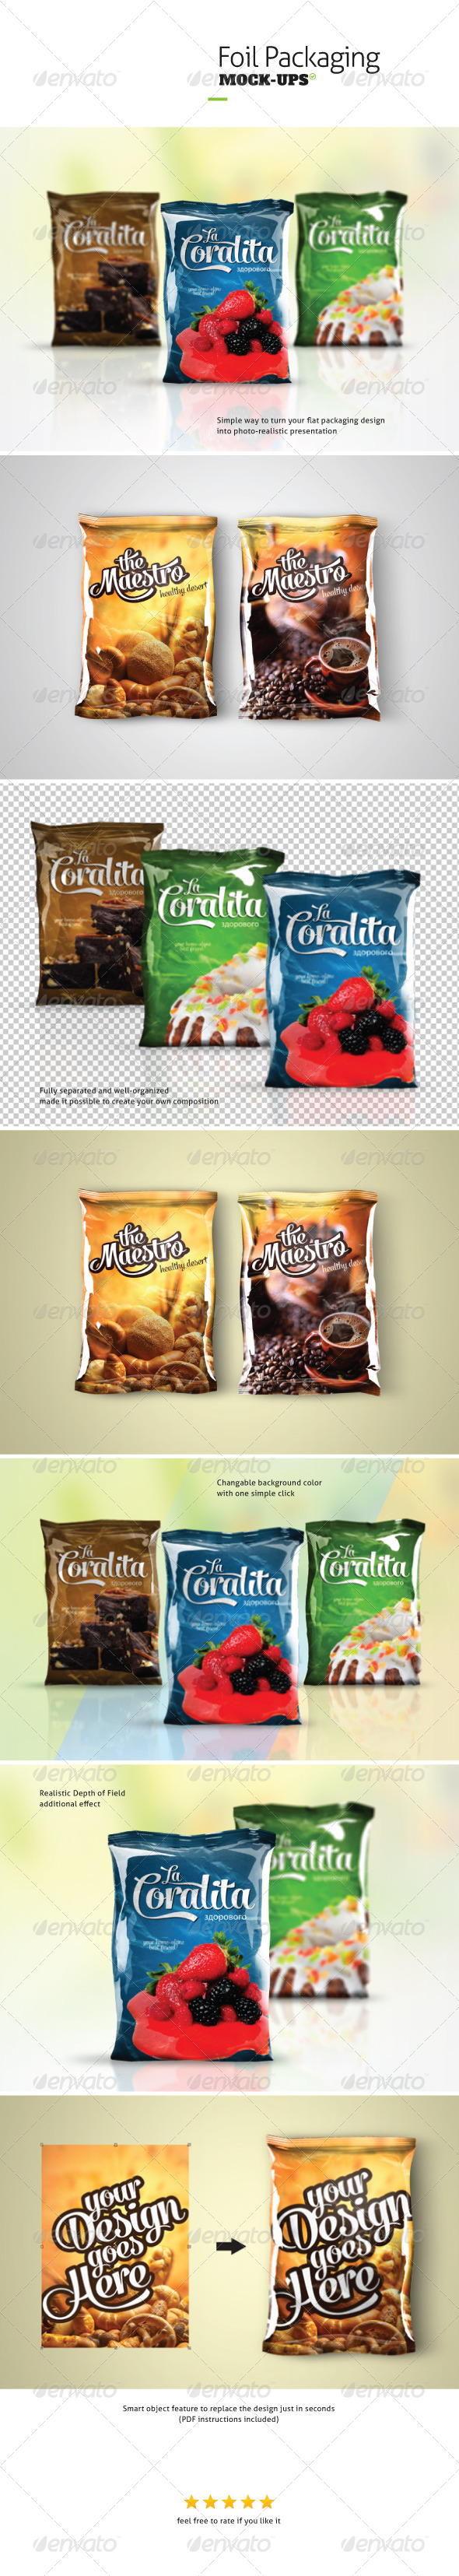 Foil Packaging Mock-ups - Food and Drink Packaging